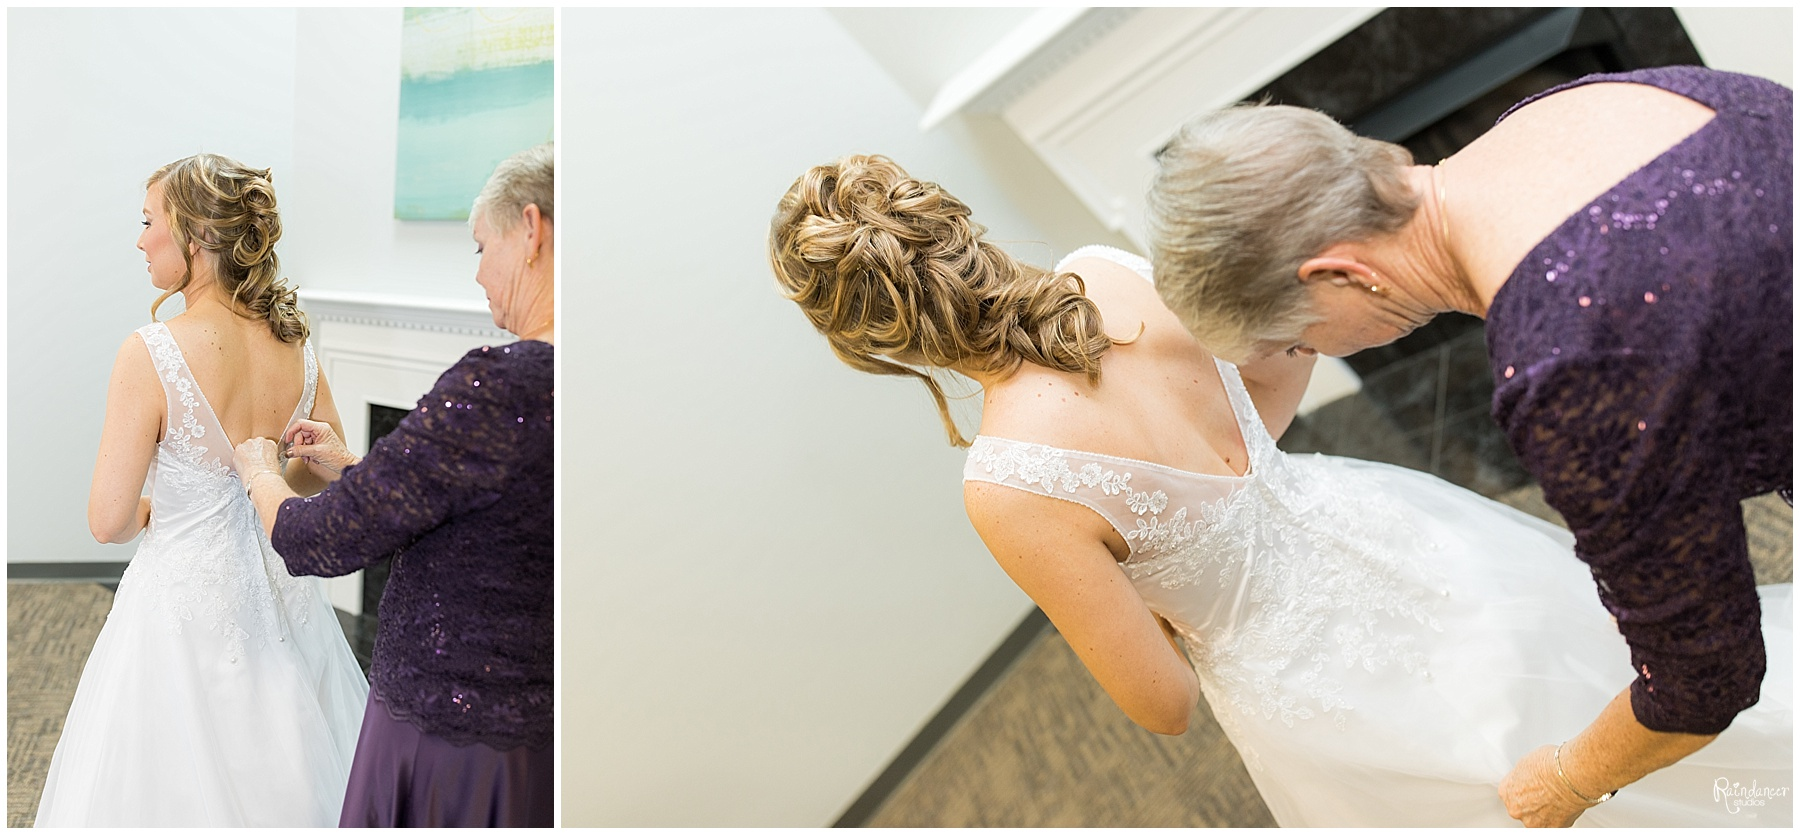 Mother of the bride helping her daughter into her wedding dress by Raindancer Studios Indianapolis Wedding Photographer Jill Howell